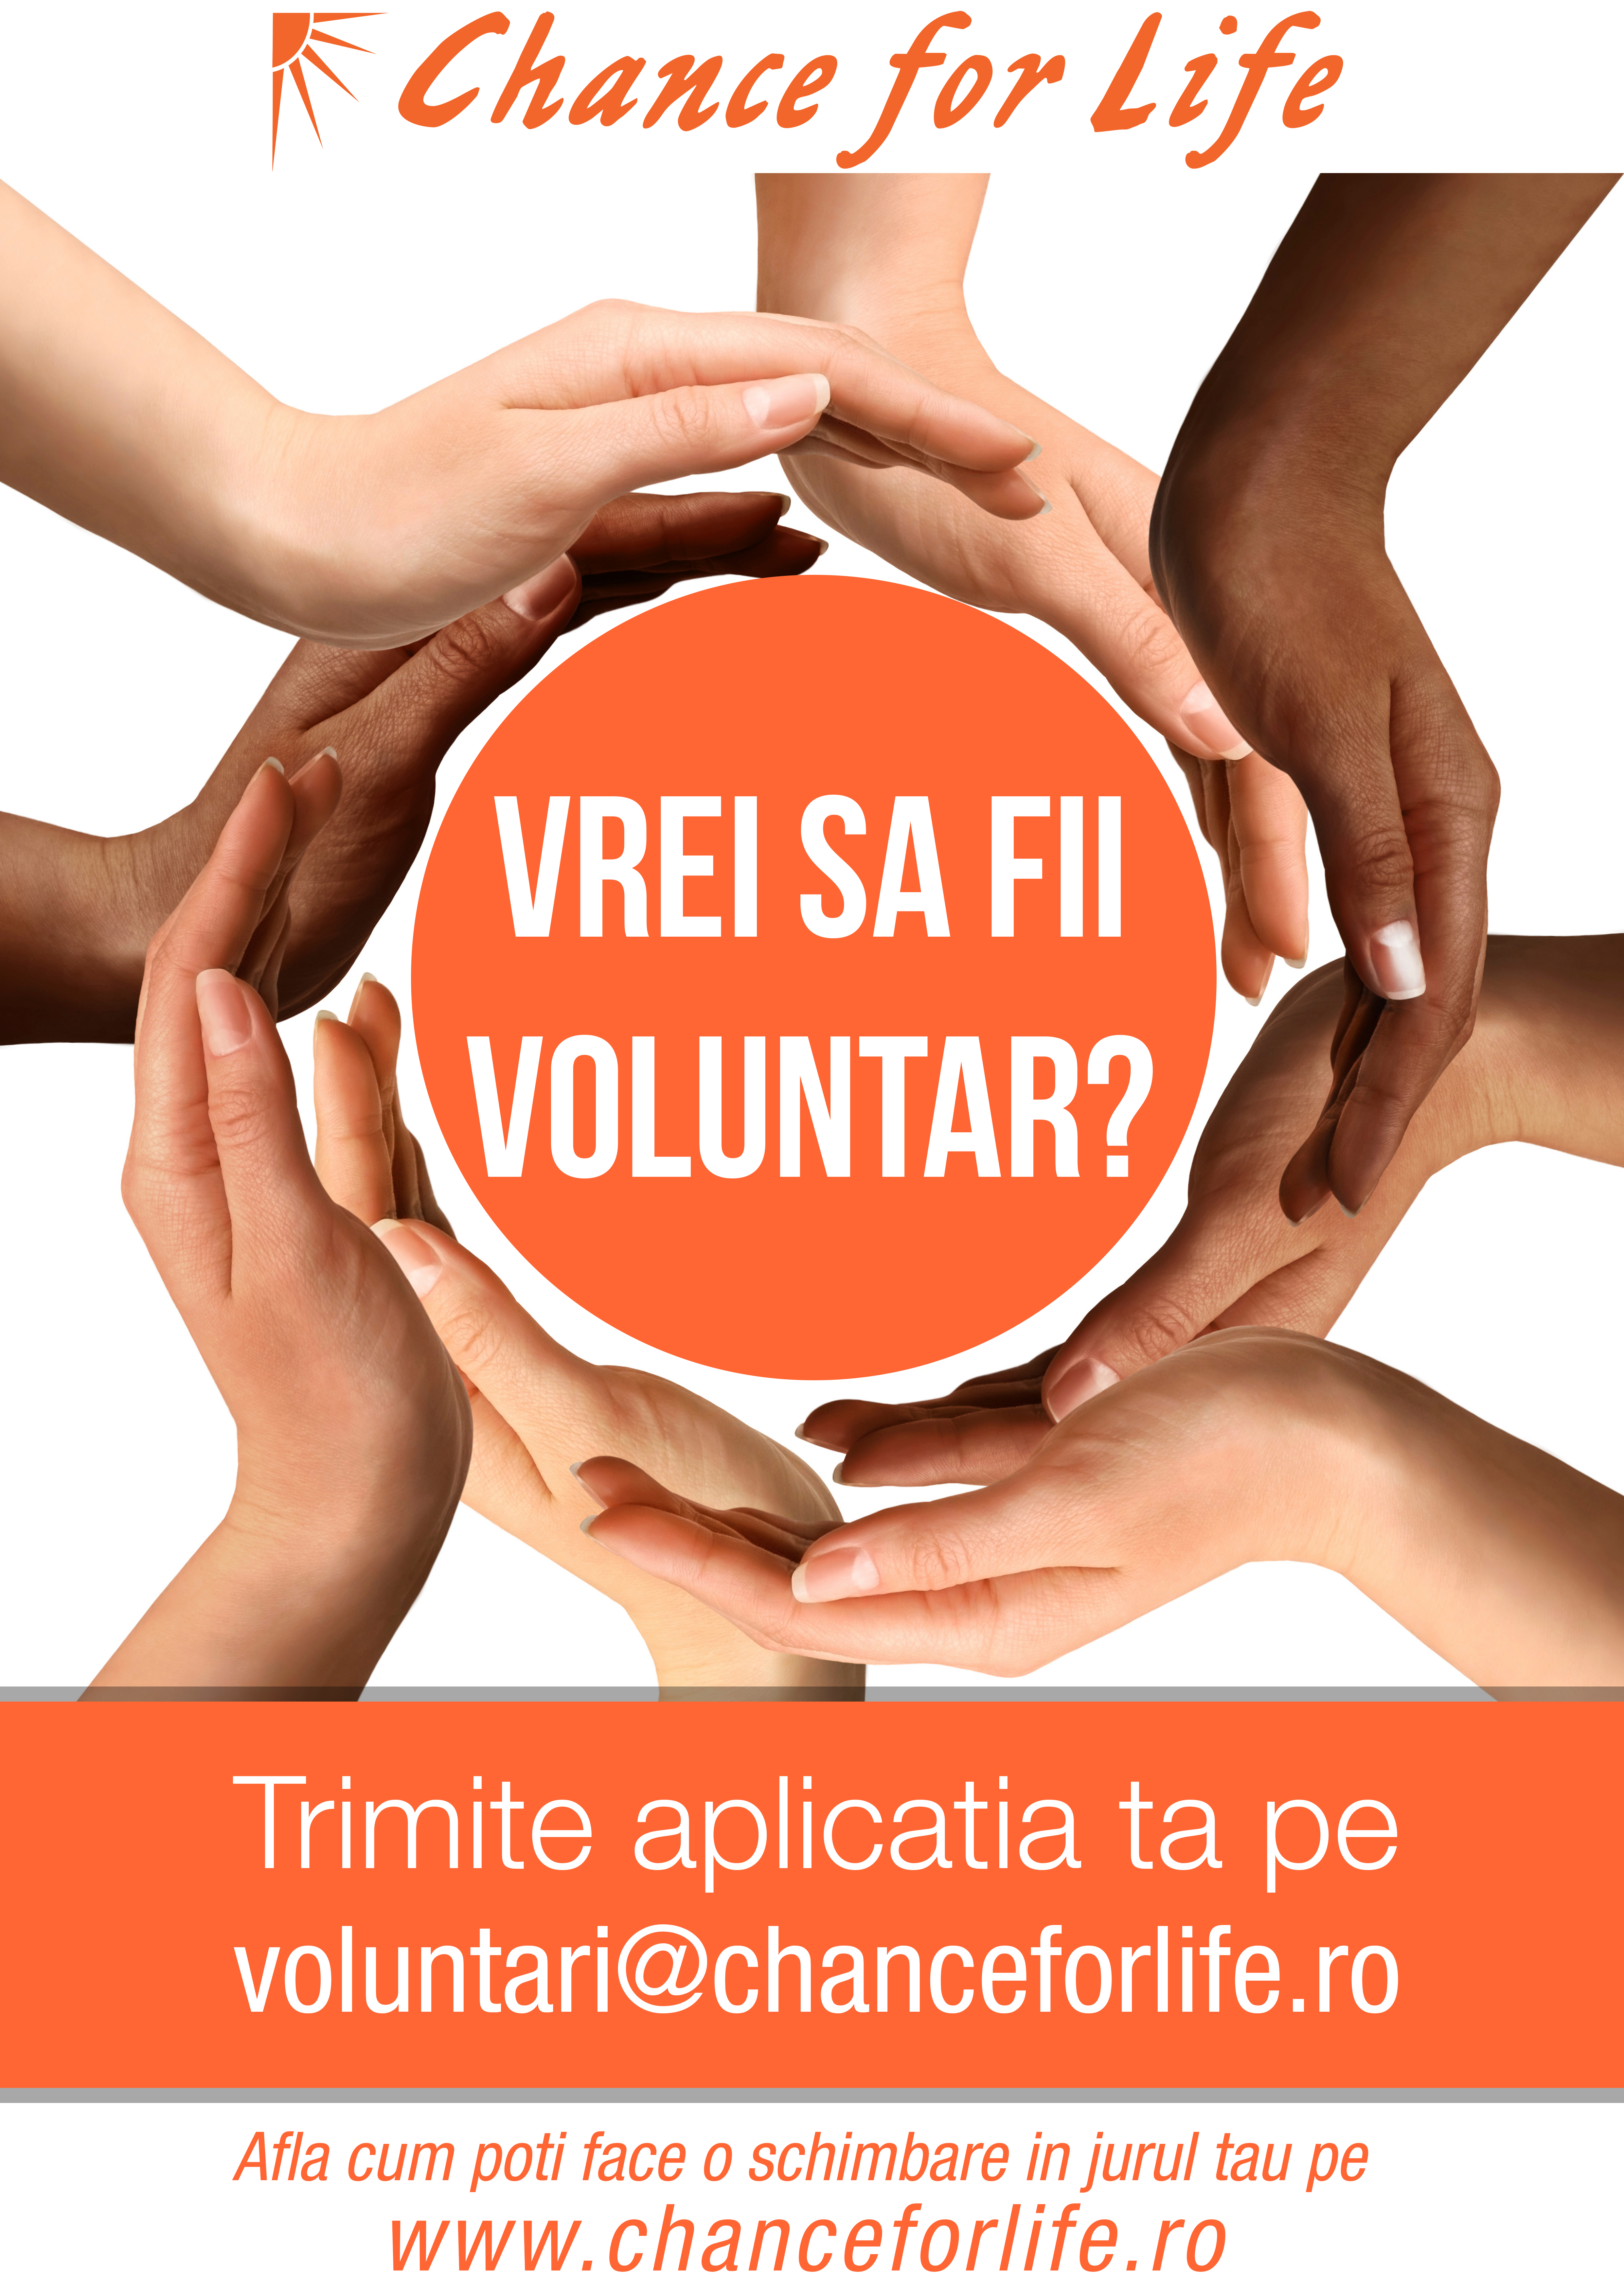 chance-for-life-vrei-sa-fii-voluntar